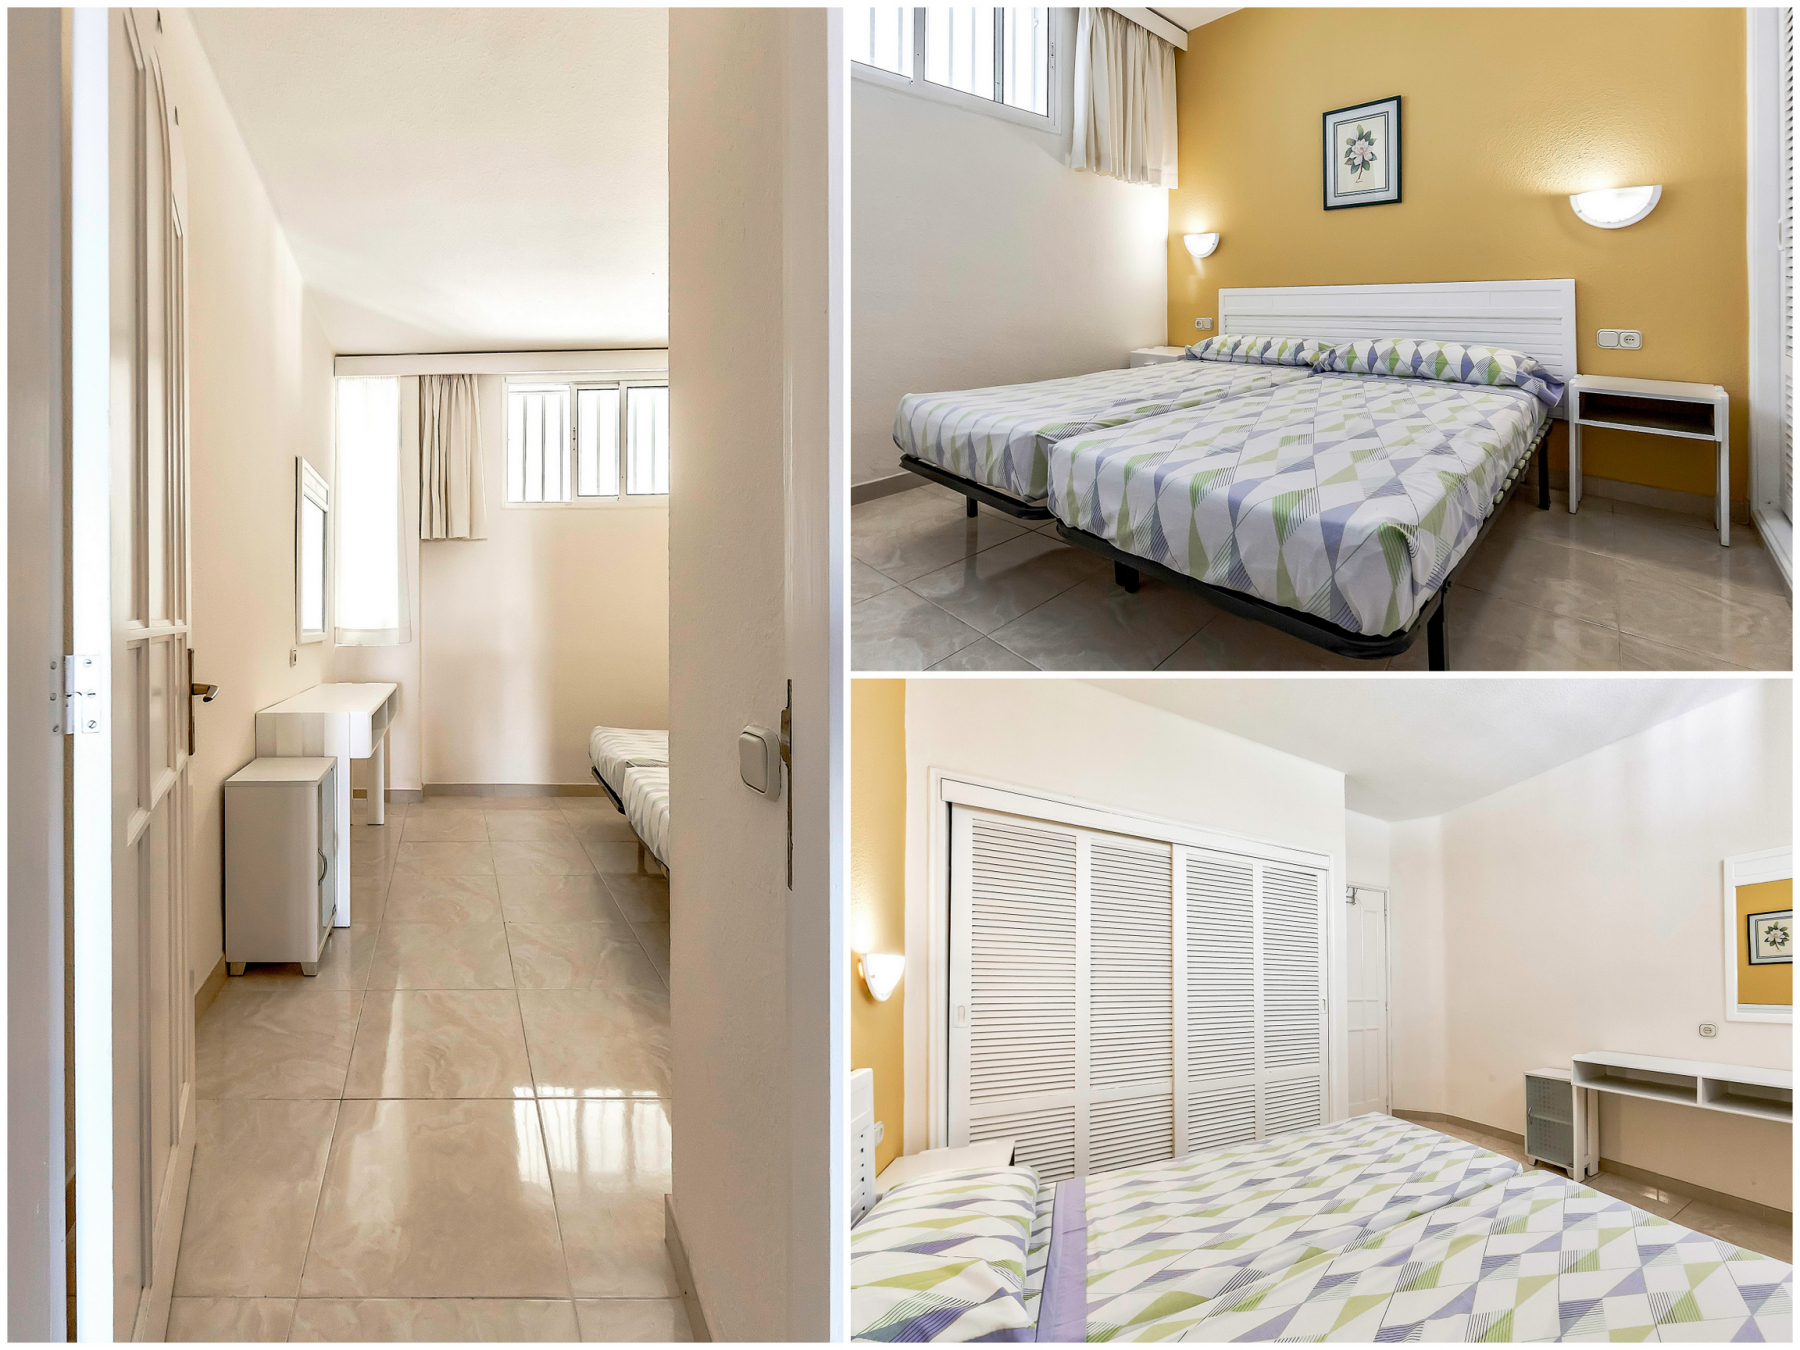 Properties for Sale in Tenerife, Canary Islands, Spain | SylkWayStar Real Estate. Lovely 1 Bedroom Apartment - Altamira. Image-25846